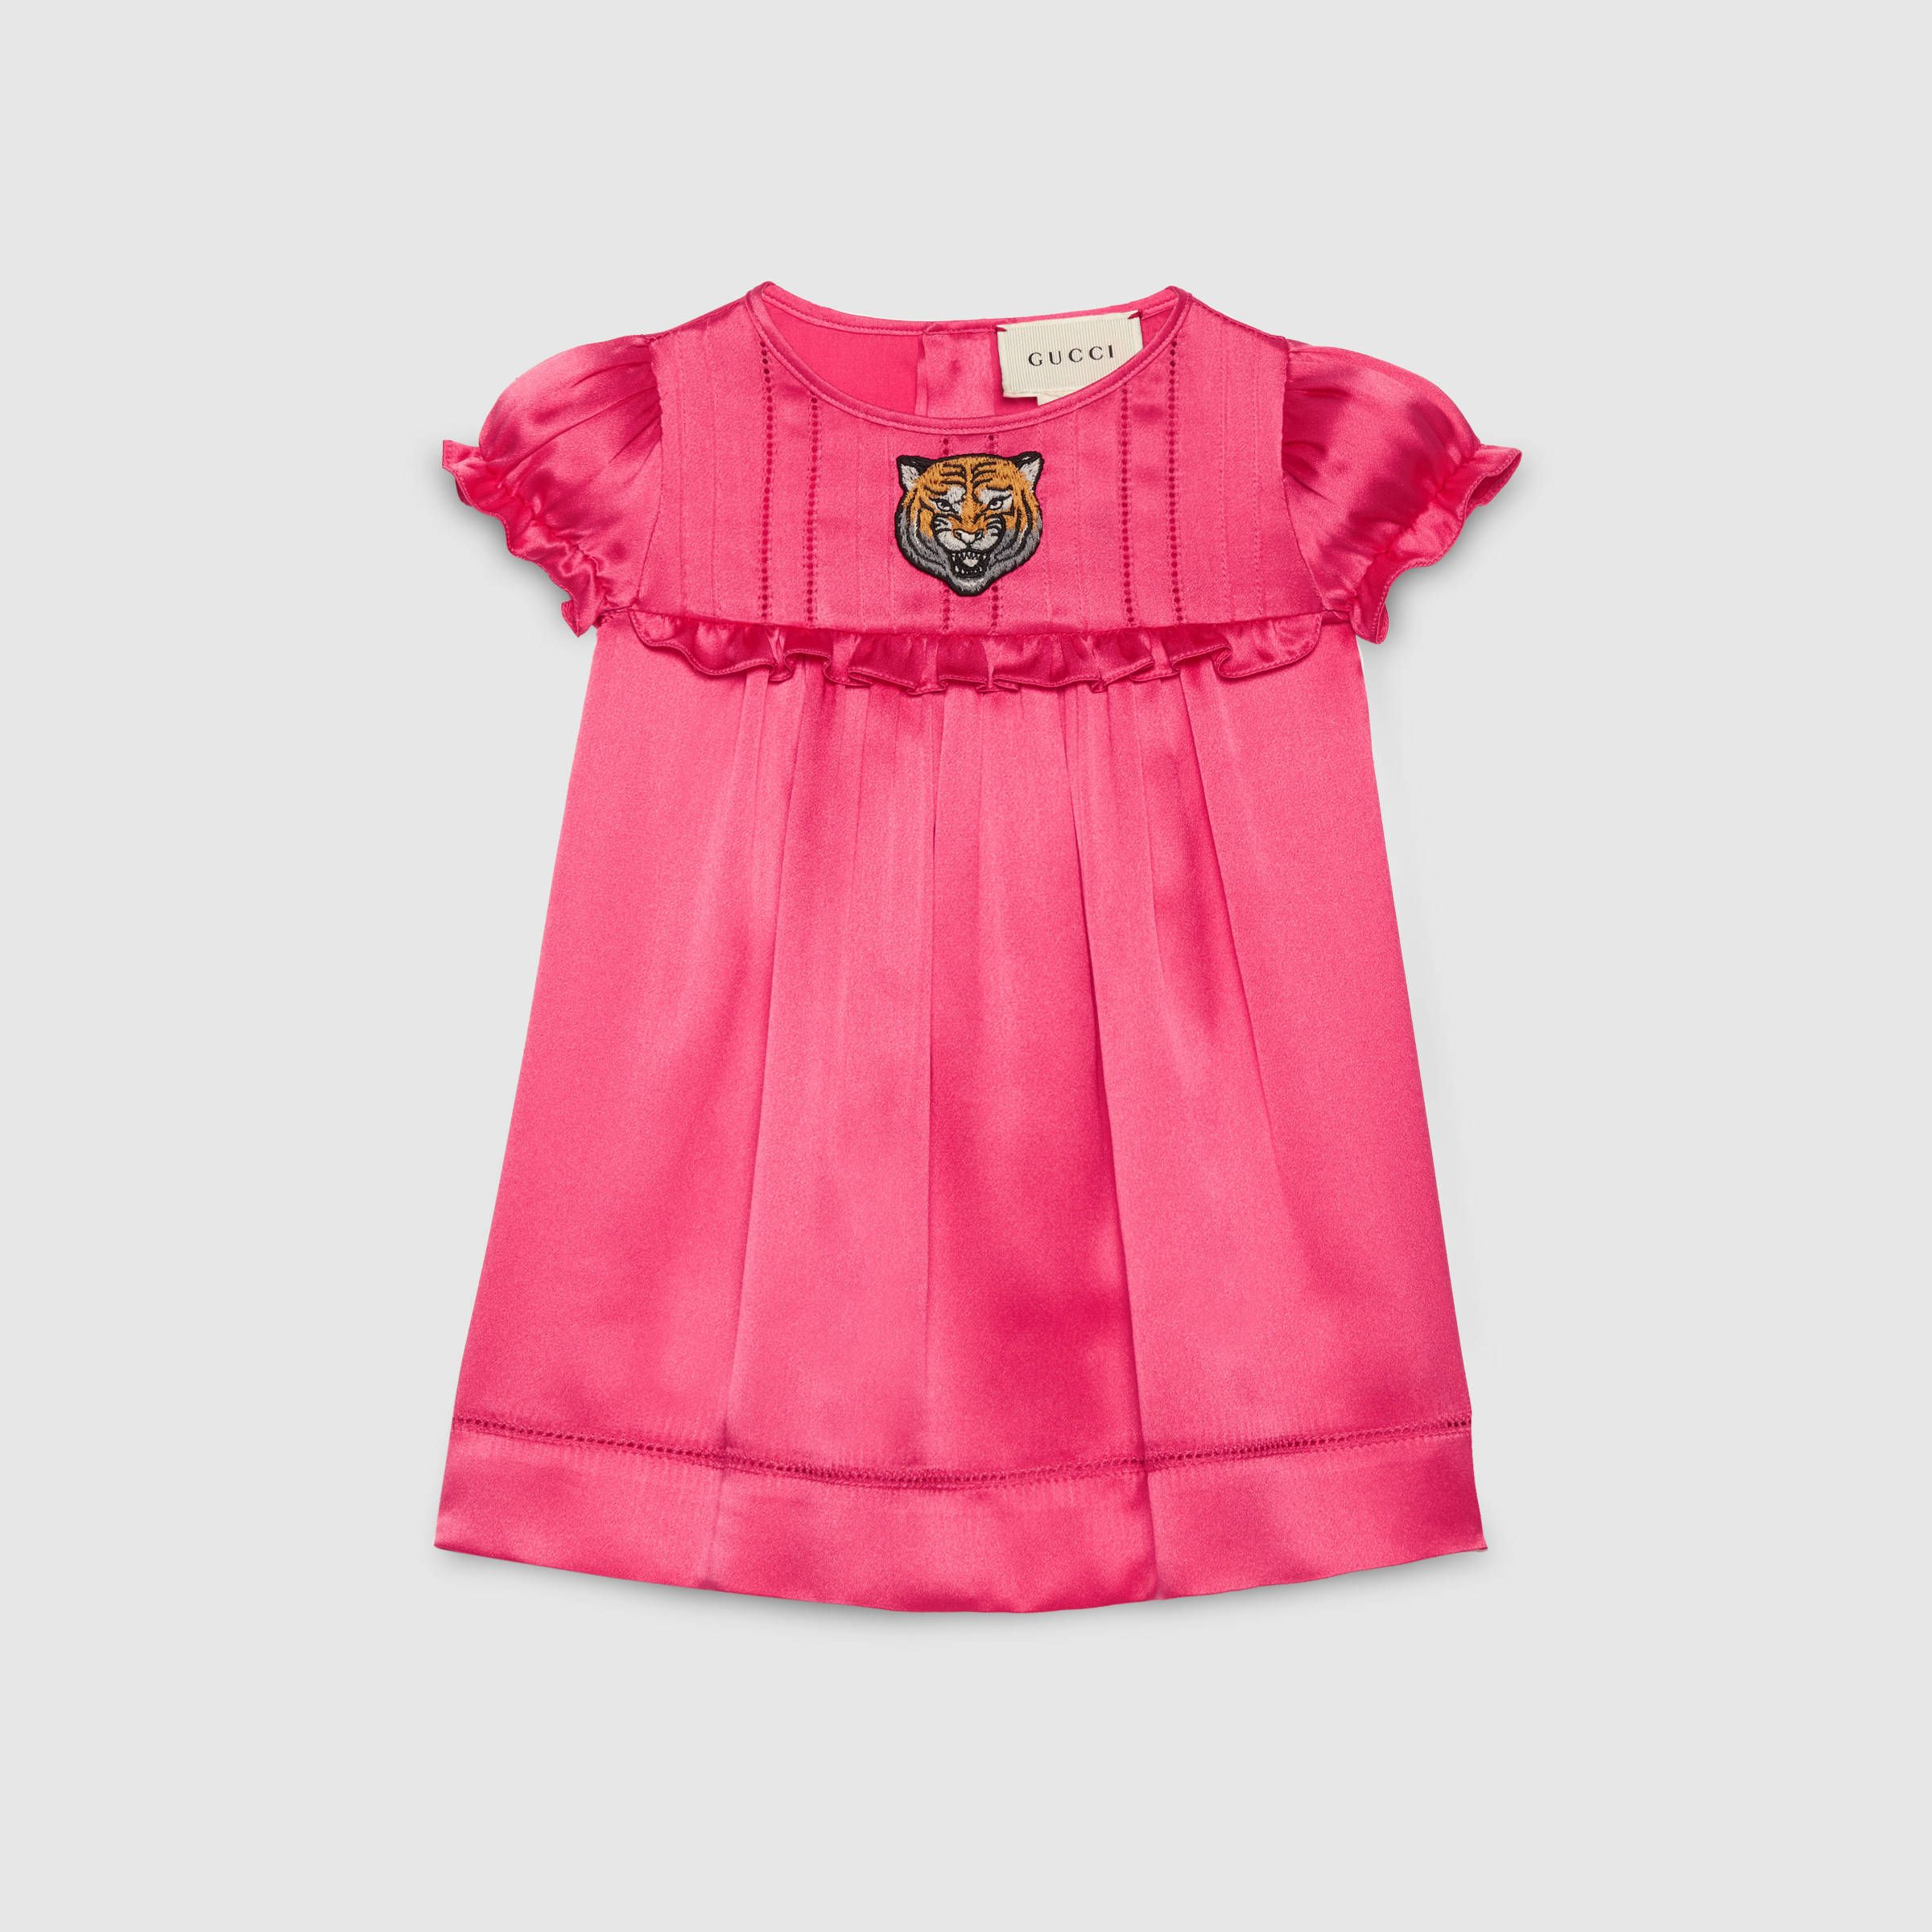 gucci satin dress baby toddler pinterest babies satin